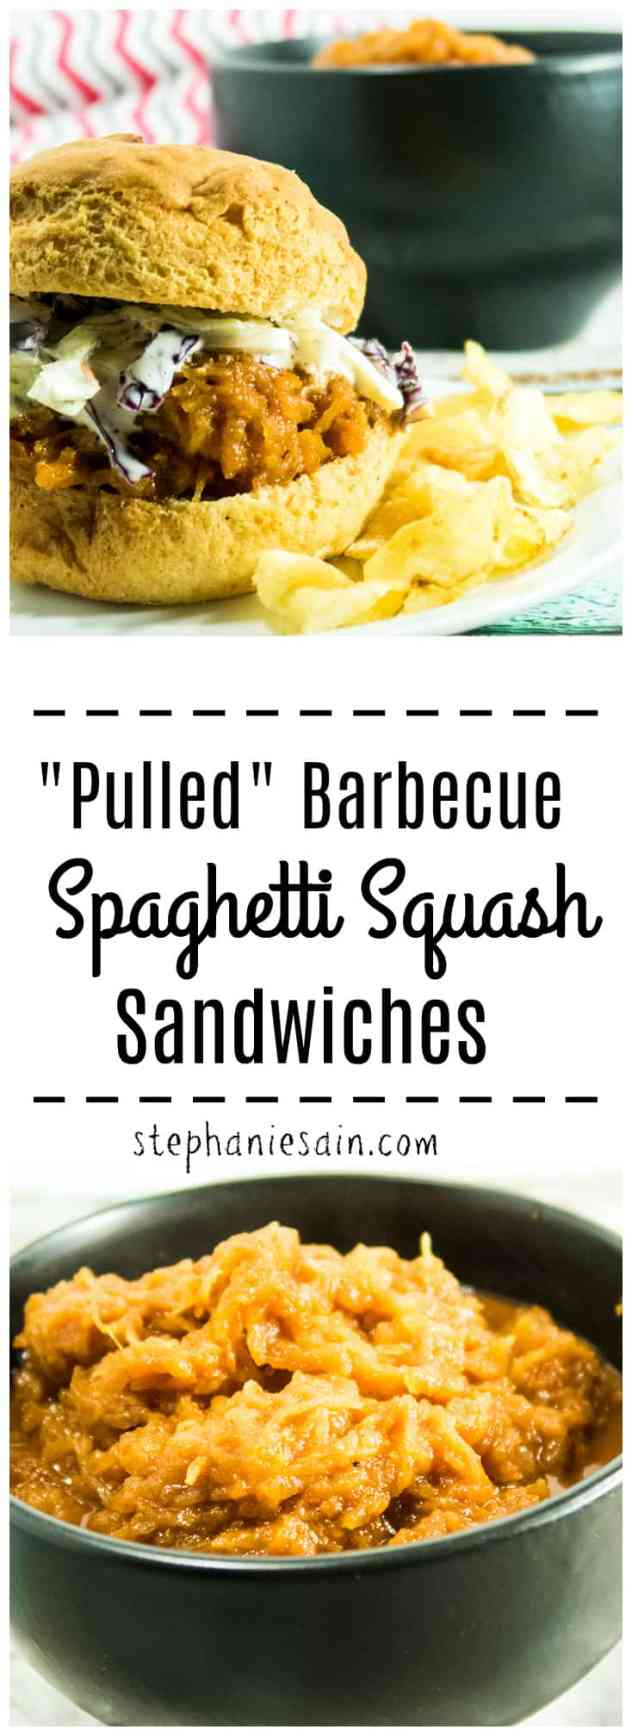 """Pulled"" Barbecue Spaghetti Squash Sandwiches are a great vegetarian, vegan option for barbecue. Made with homemade BBQ sauce and topped with crunchy coleslaw. The perfect addition for a cookout or anytime. Gluten Free, Vegetarian, Vegan option."